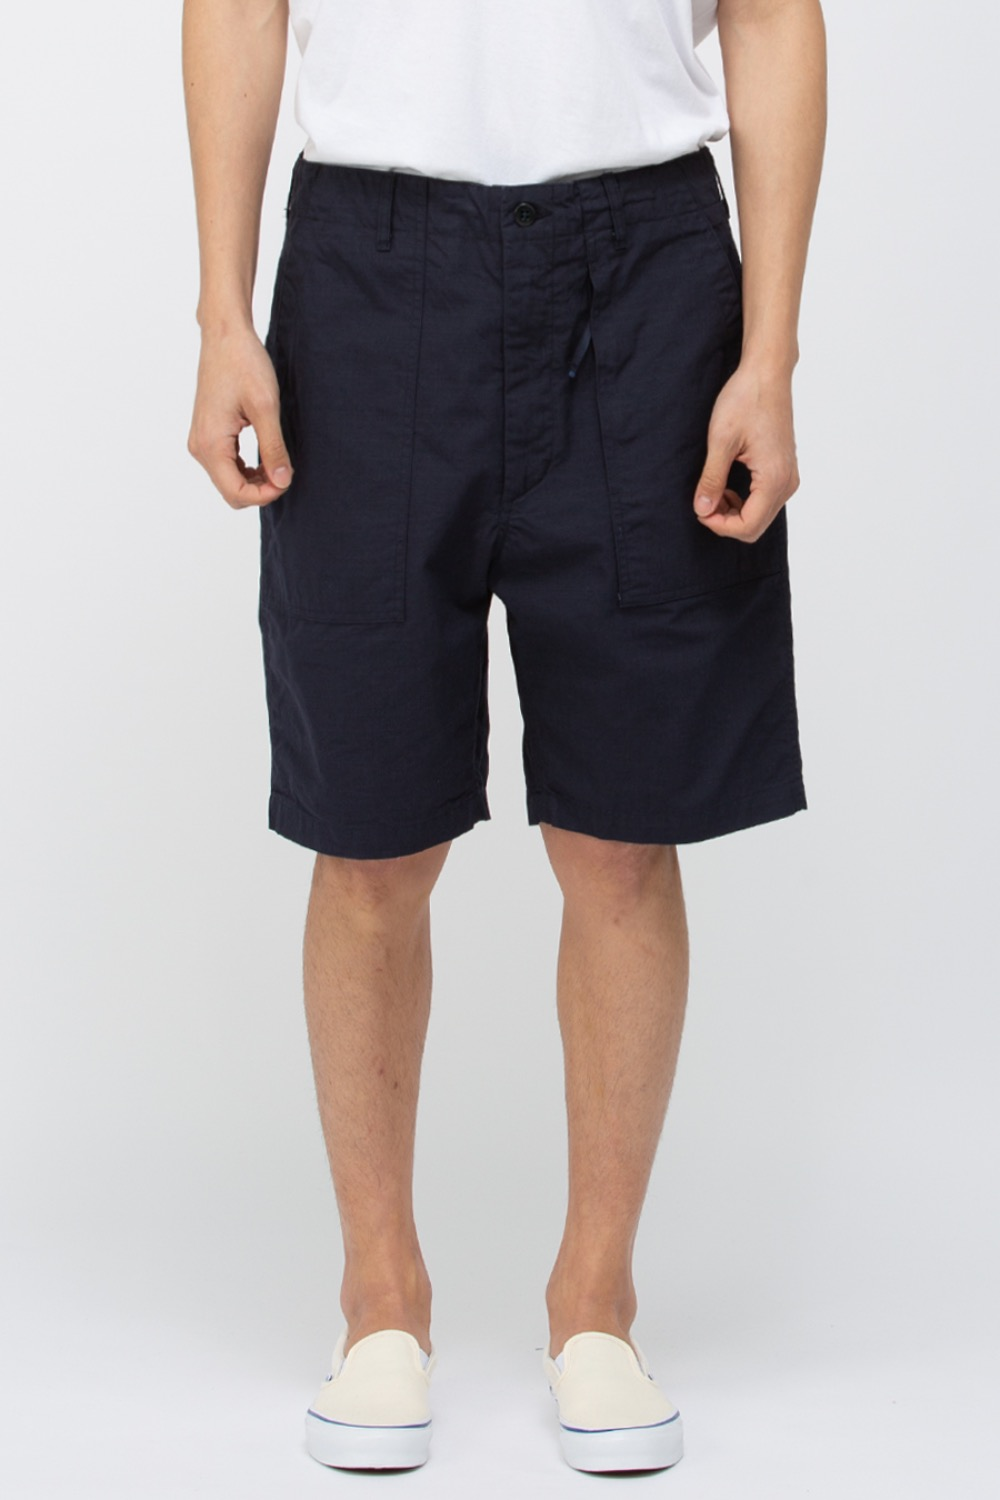 FATIGUE SHORT COTTON RIPSTIOP DARK NAVY